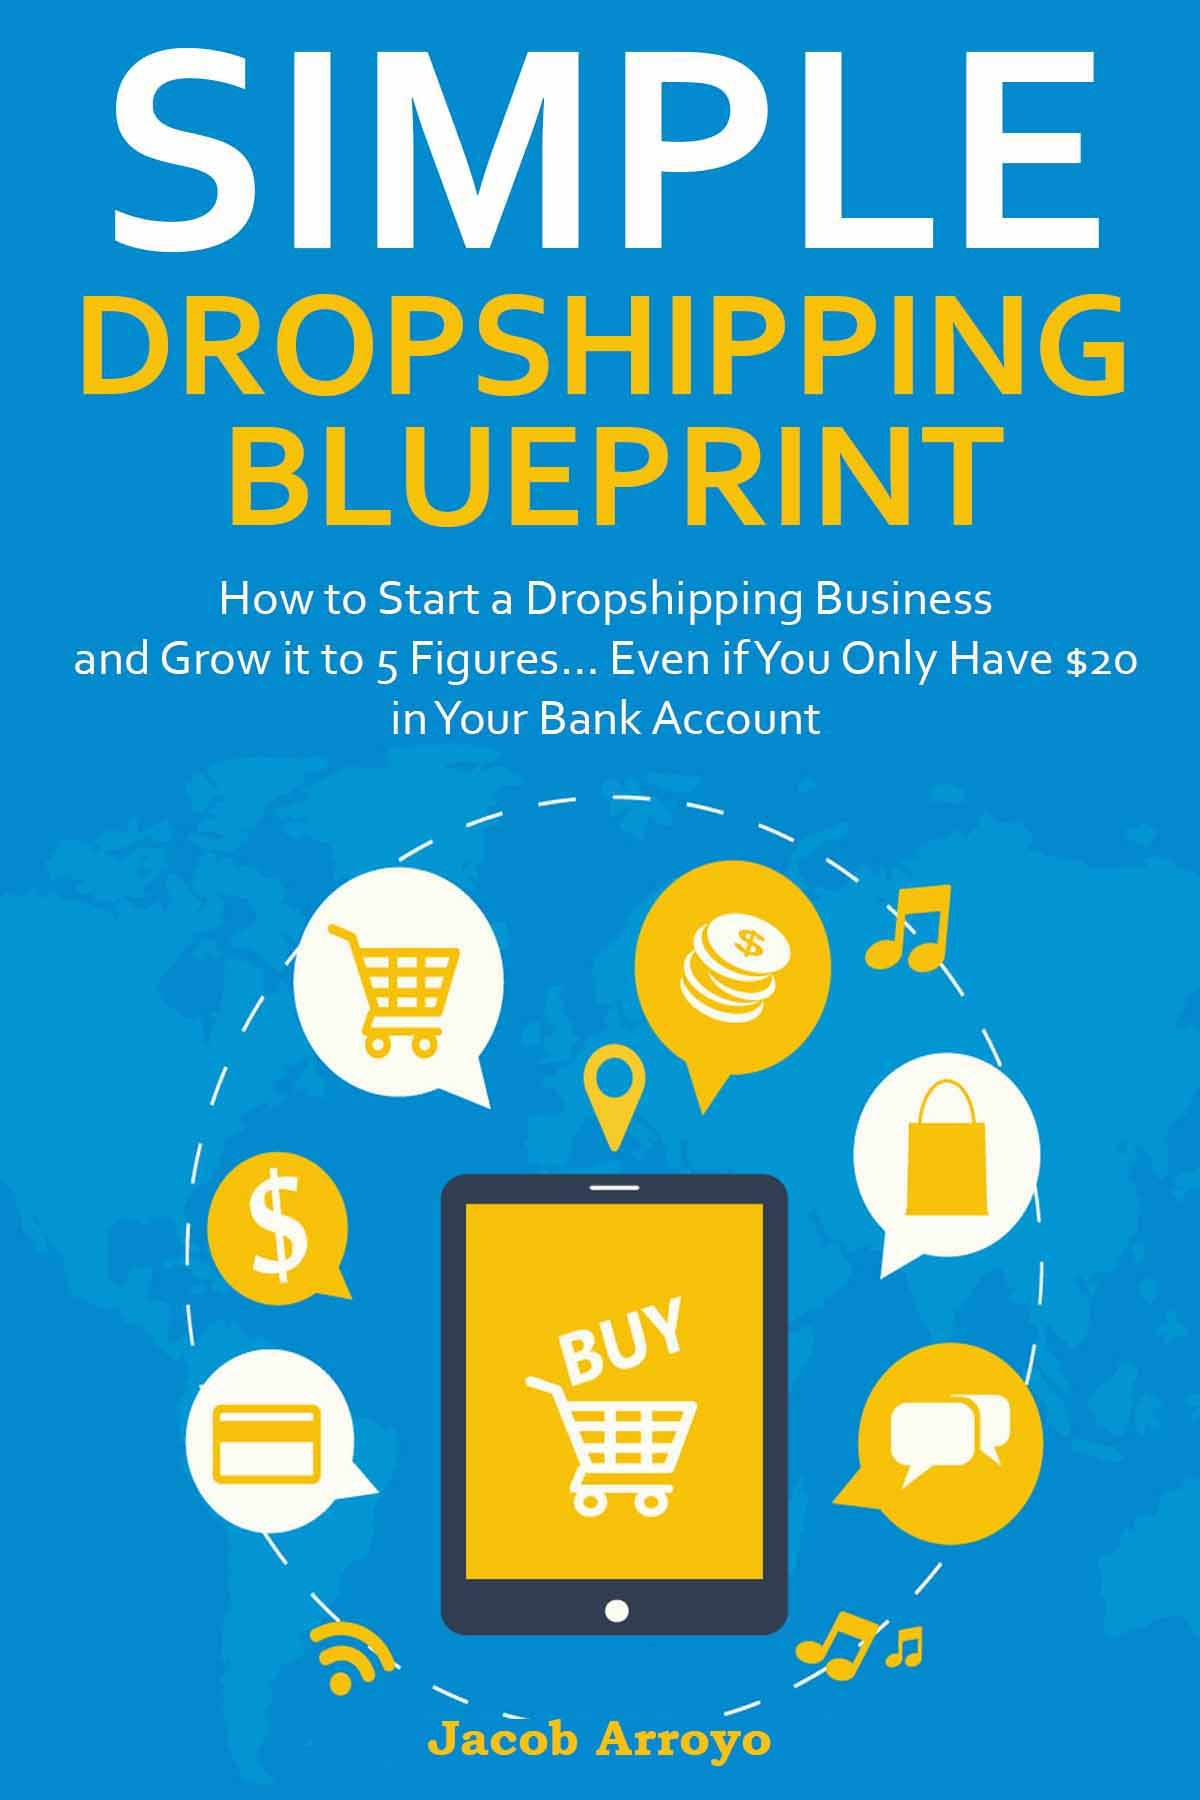 SIMPLE DROPSHIPPING BLUEPRINT: How to Start a Dropshipping Business and Grow it to 5 Figures… Even if You Only Have $20 in Your Bank Account